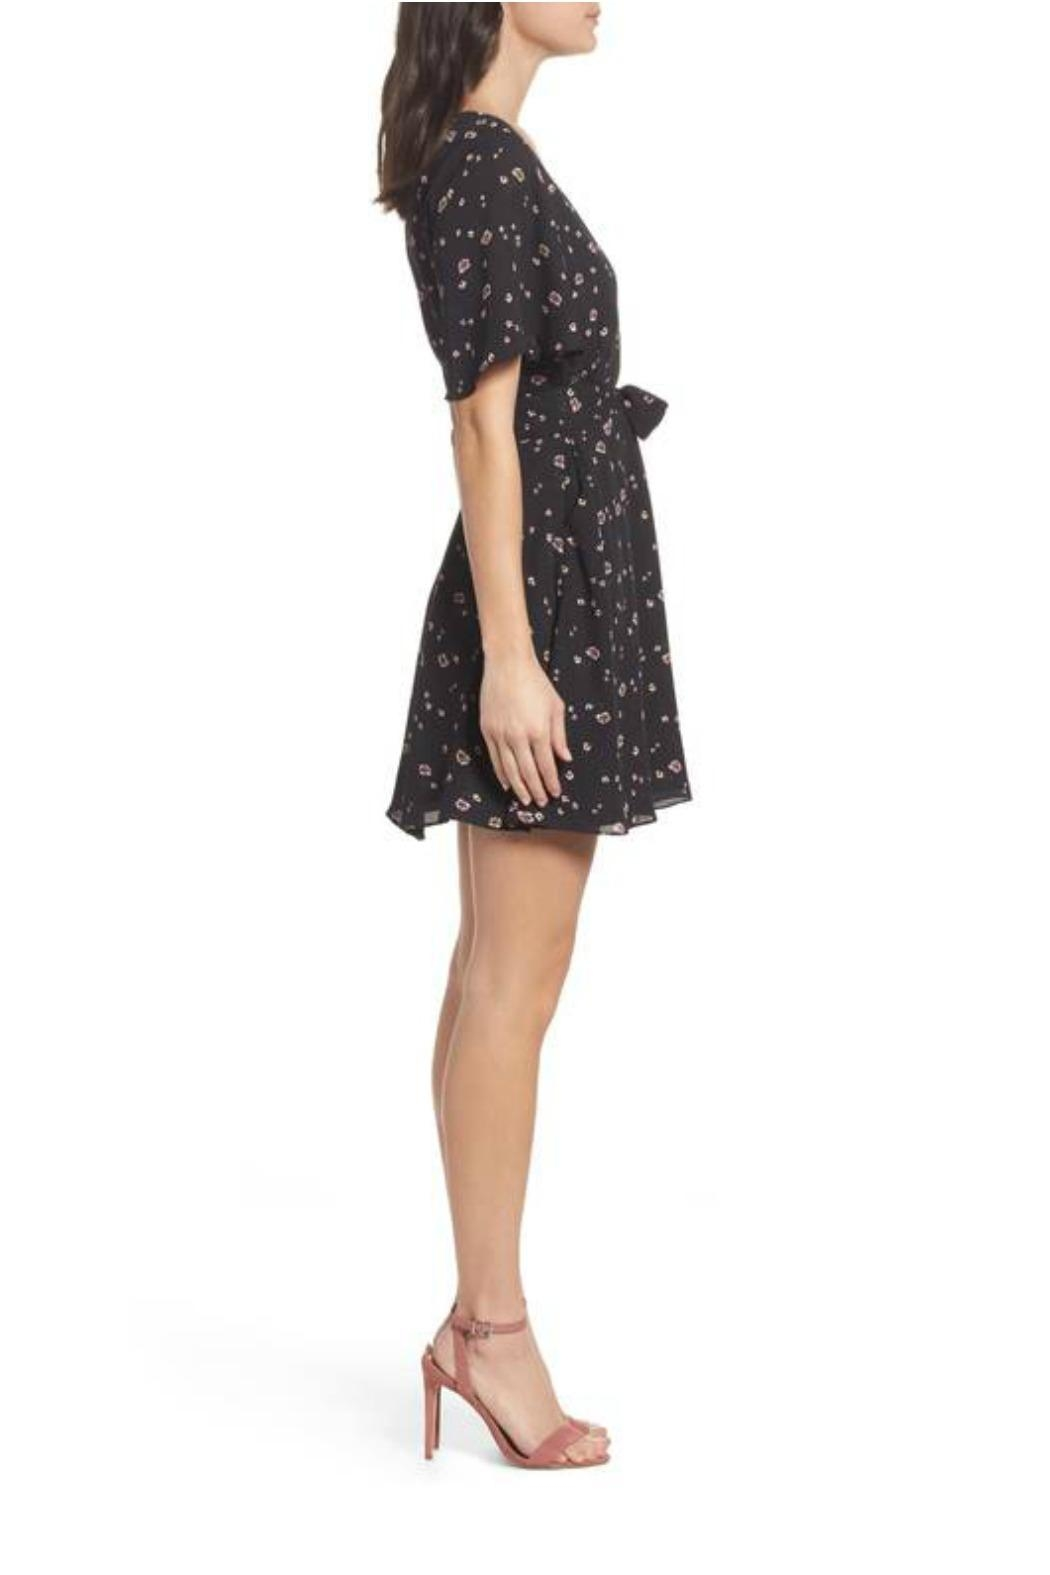 BB Dakota Lettie Floral Dress - Side Cropped Image